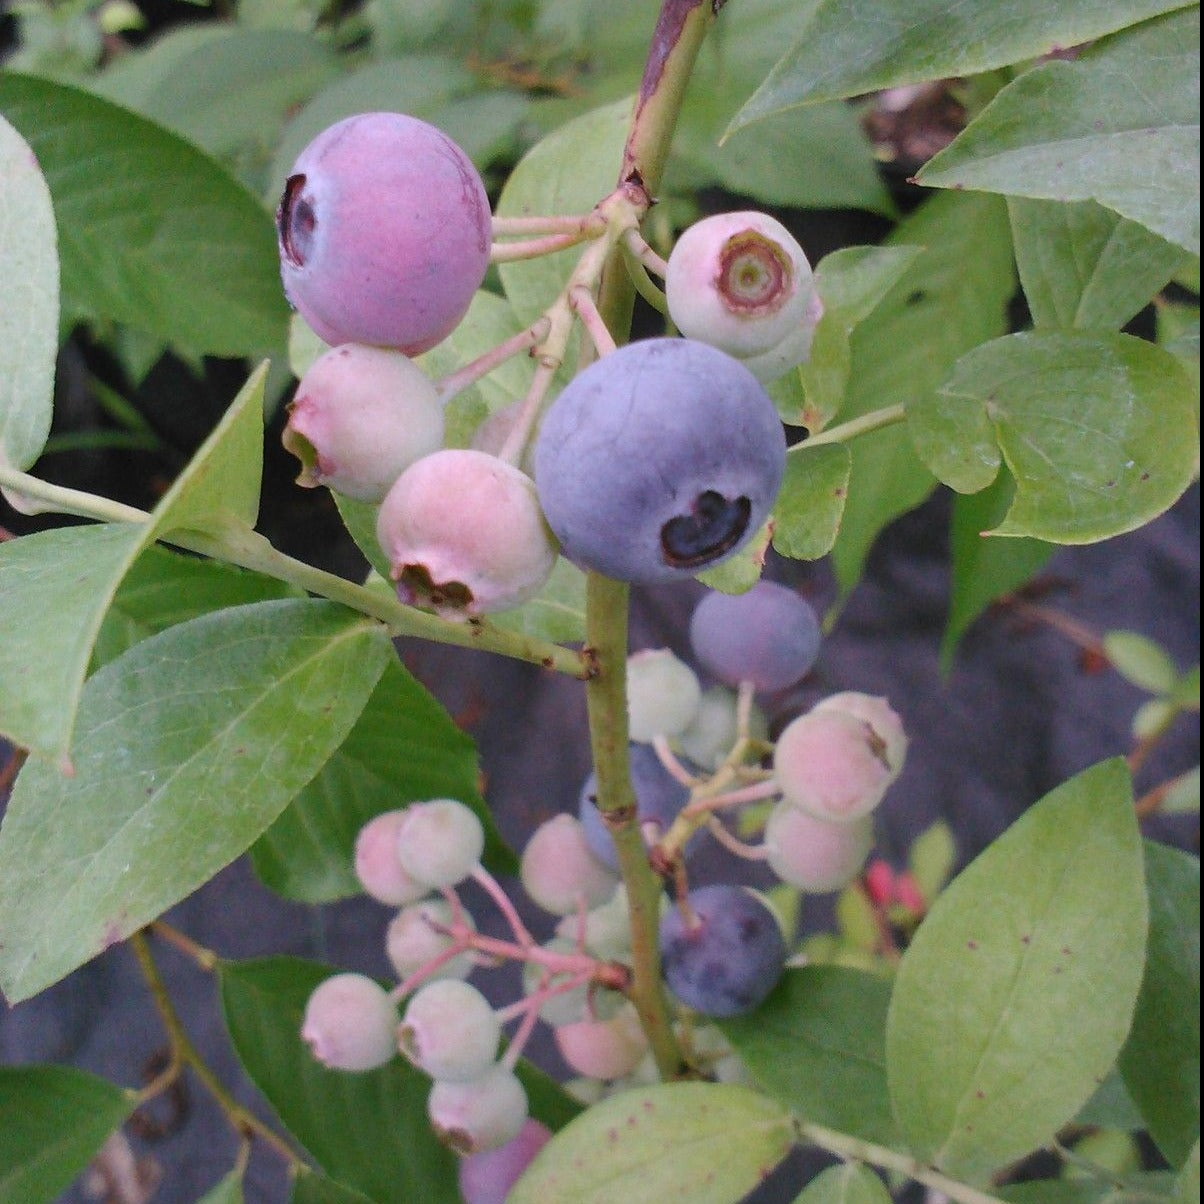 TITAN Blueberry, berries are almost the size of a quarter, berry is very sweet